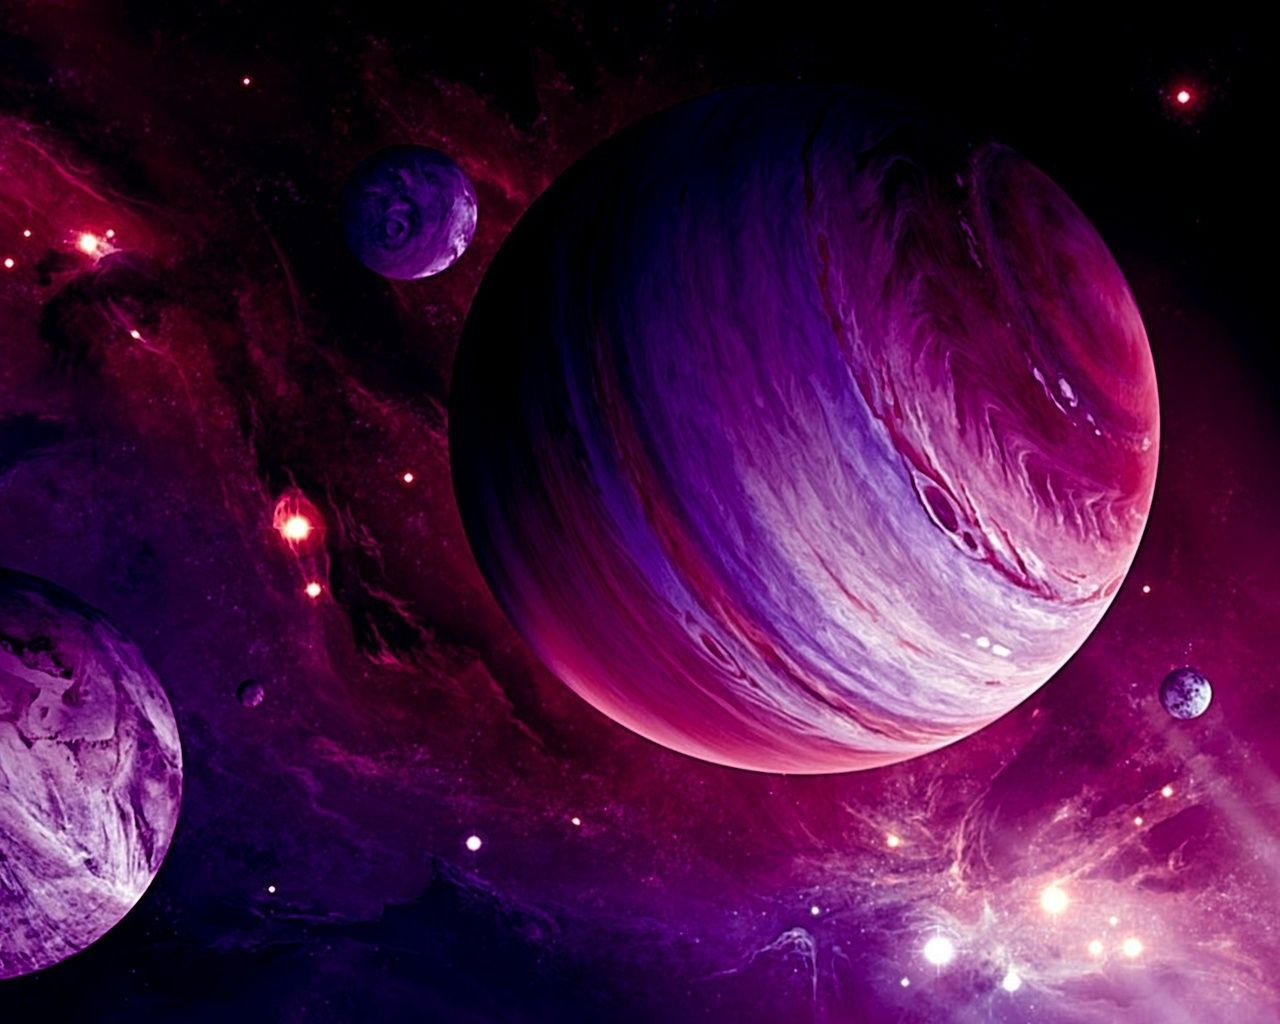 Pink Color Wallpaper Space The Pink Frontier Outer Space Wallpaper Wallpaper Backgrounds Colorful Wallpaper